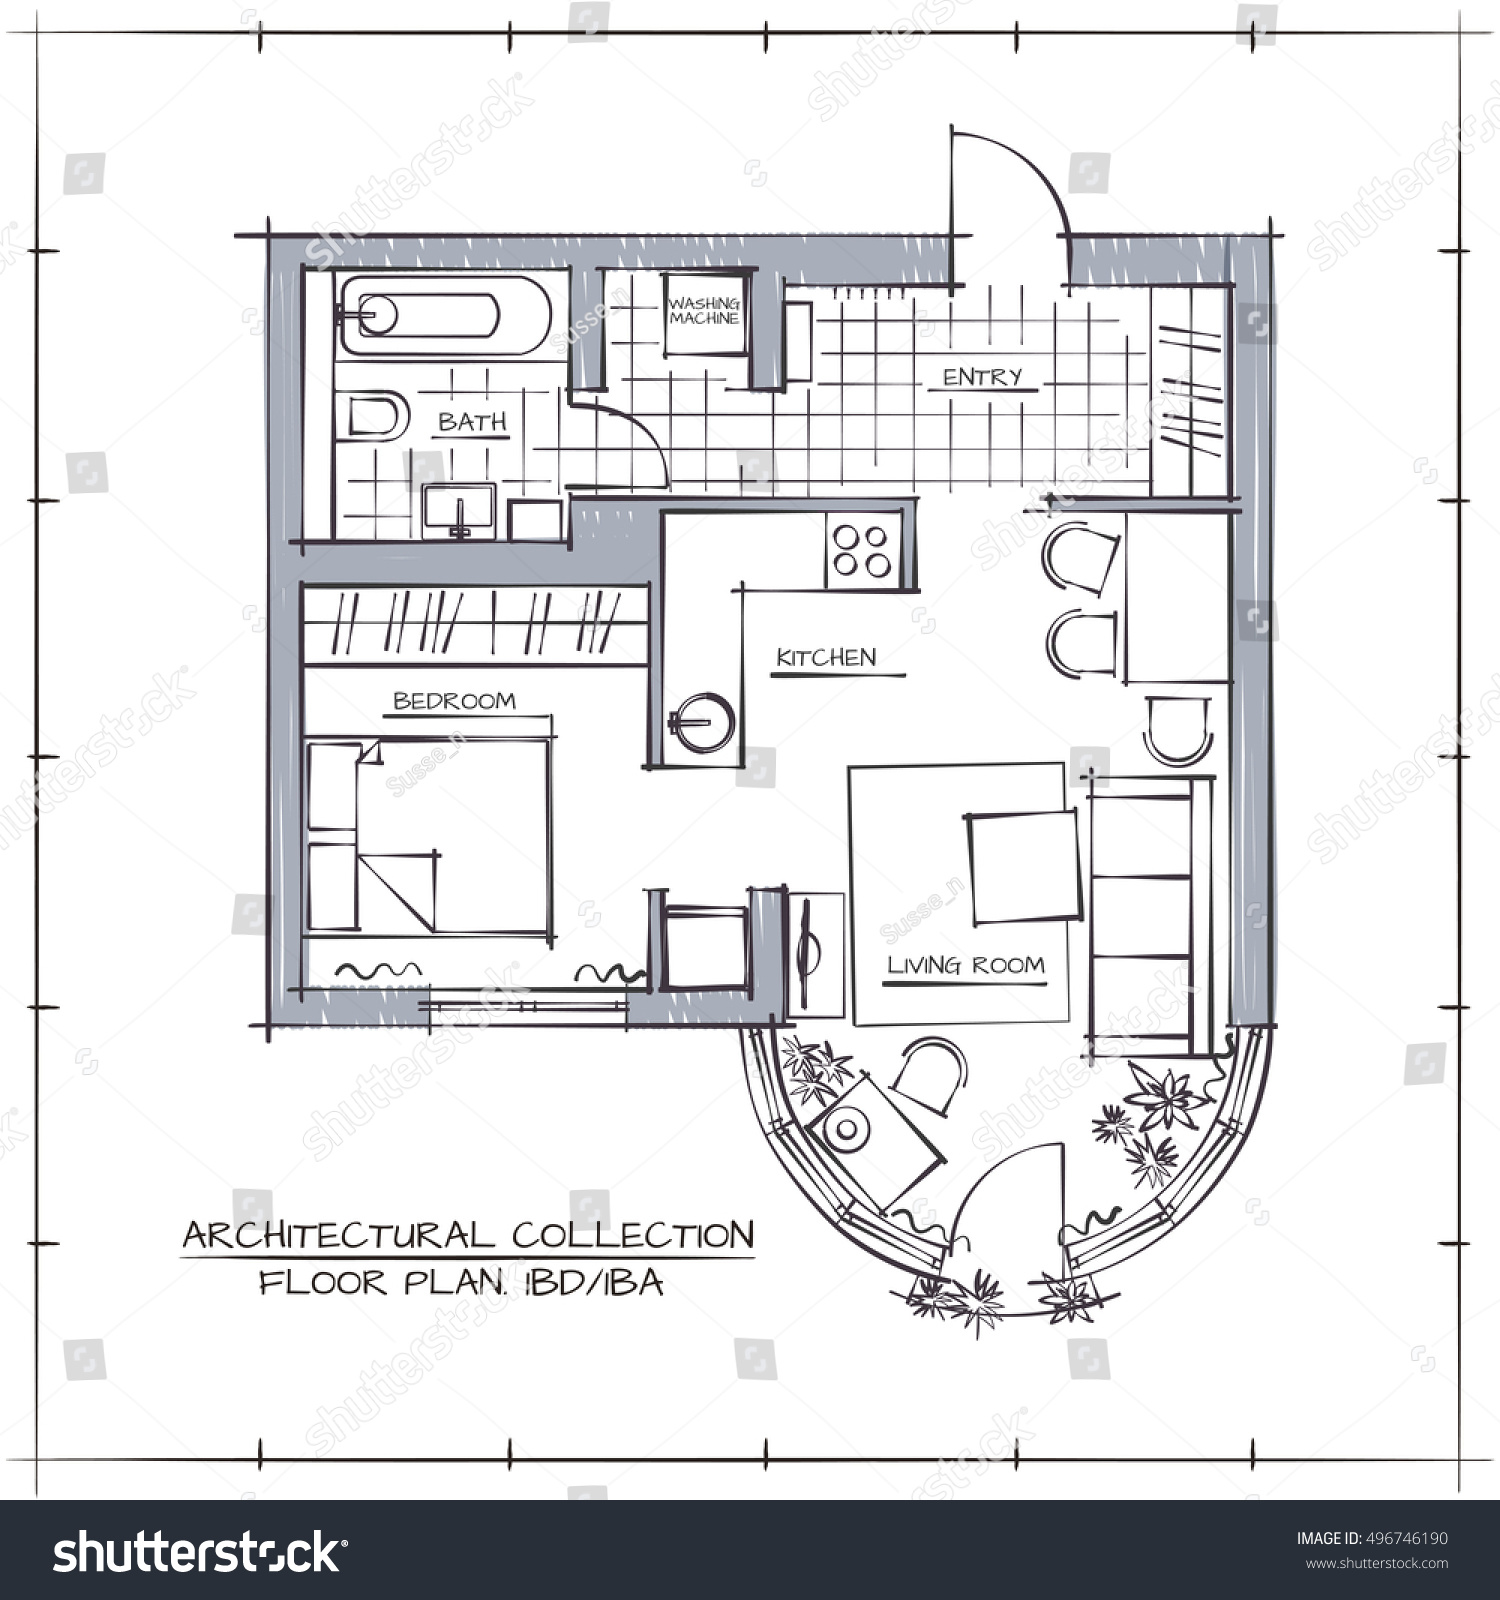 Architectural hand drawn vector floor plan stock vector for How to draw architectural plans by hand